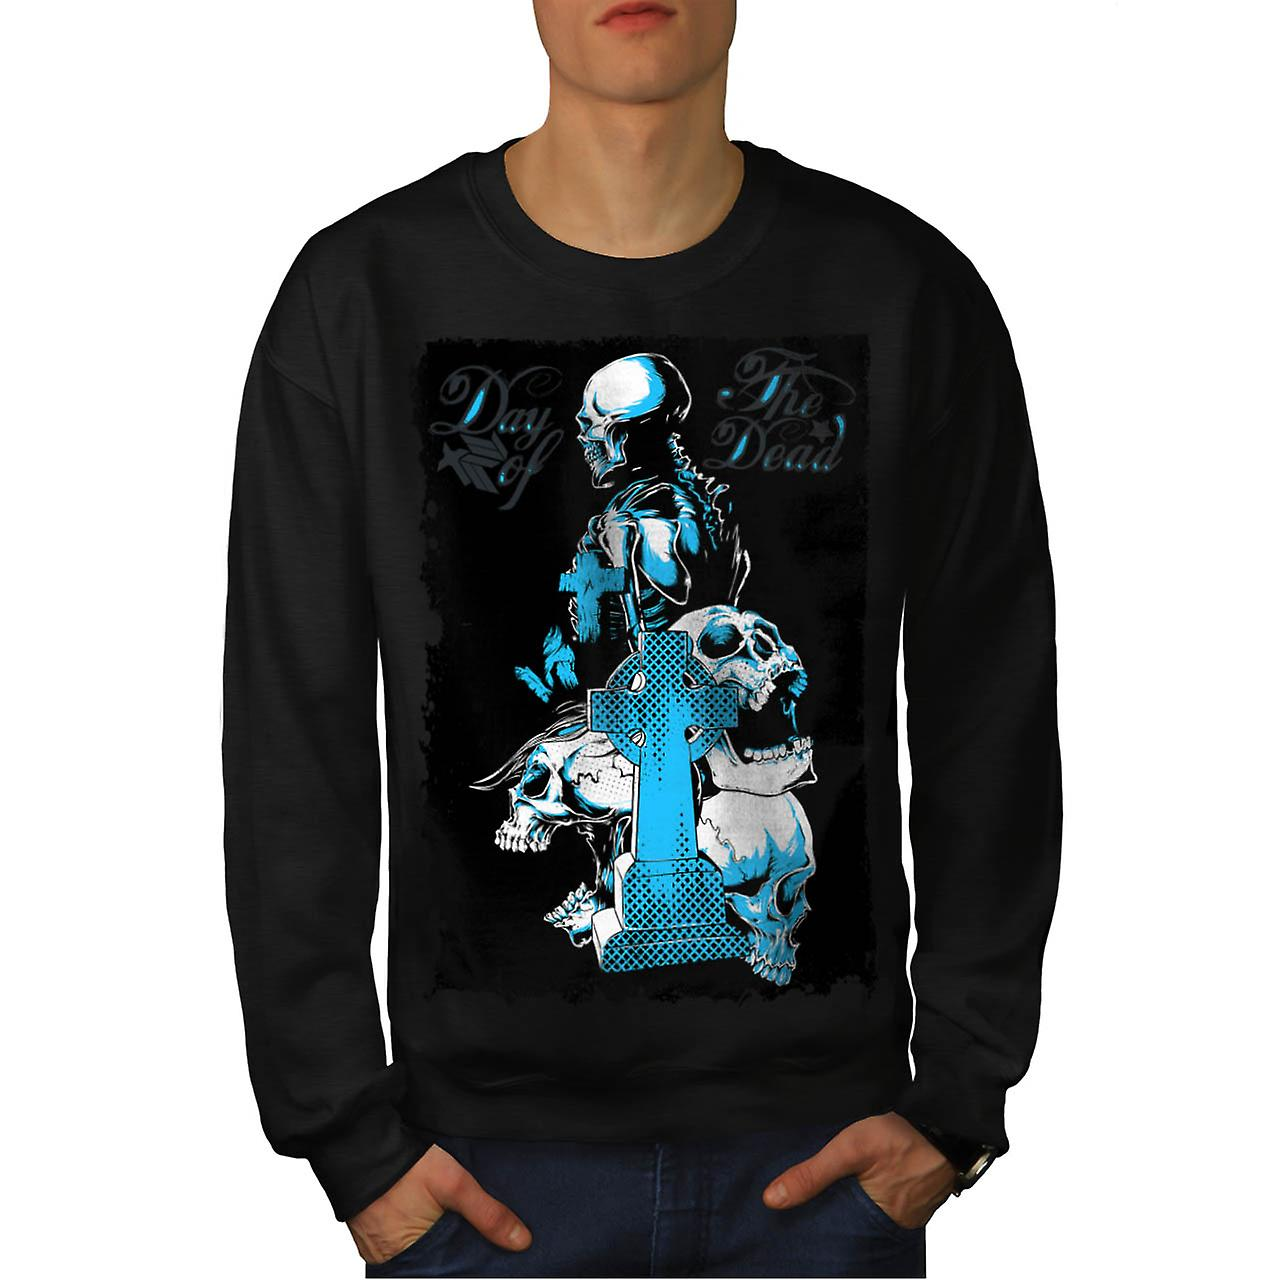 Dead Day Grave Yard Skull Tomb Men Black Sweatshirt | Wellcoda